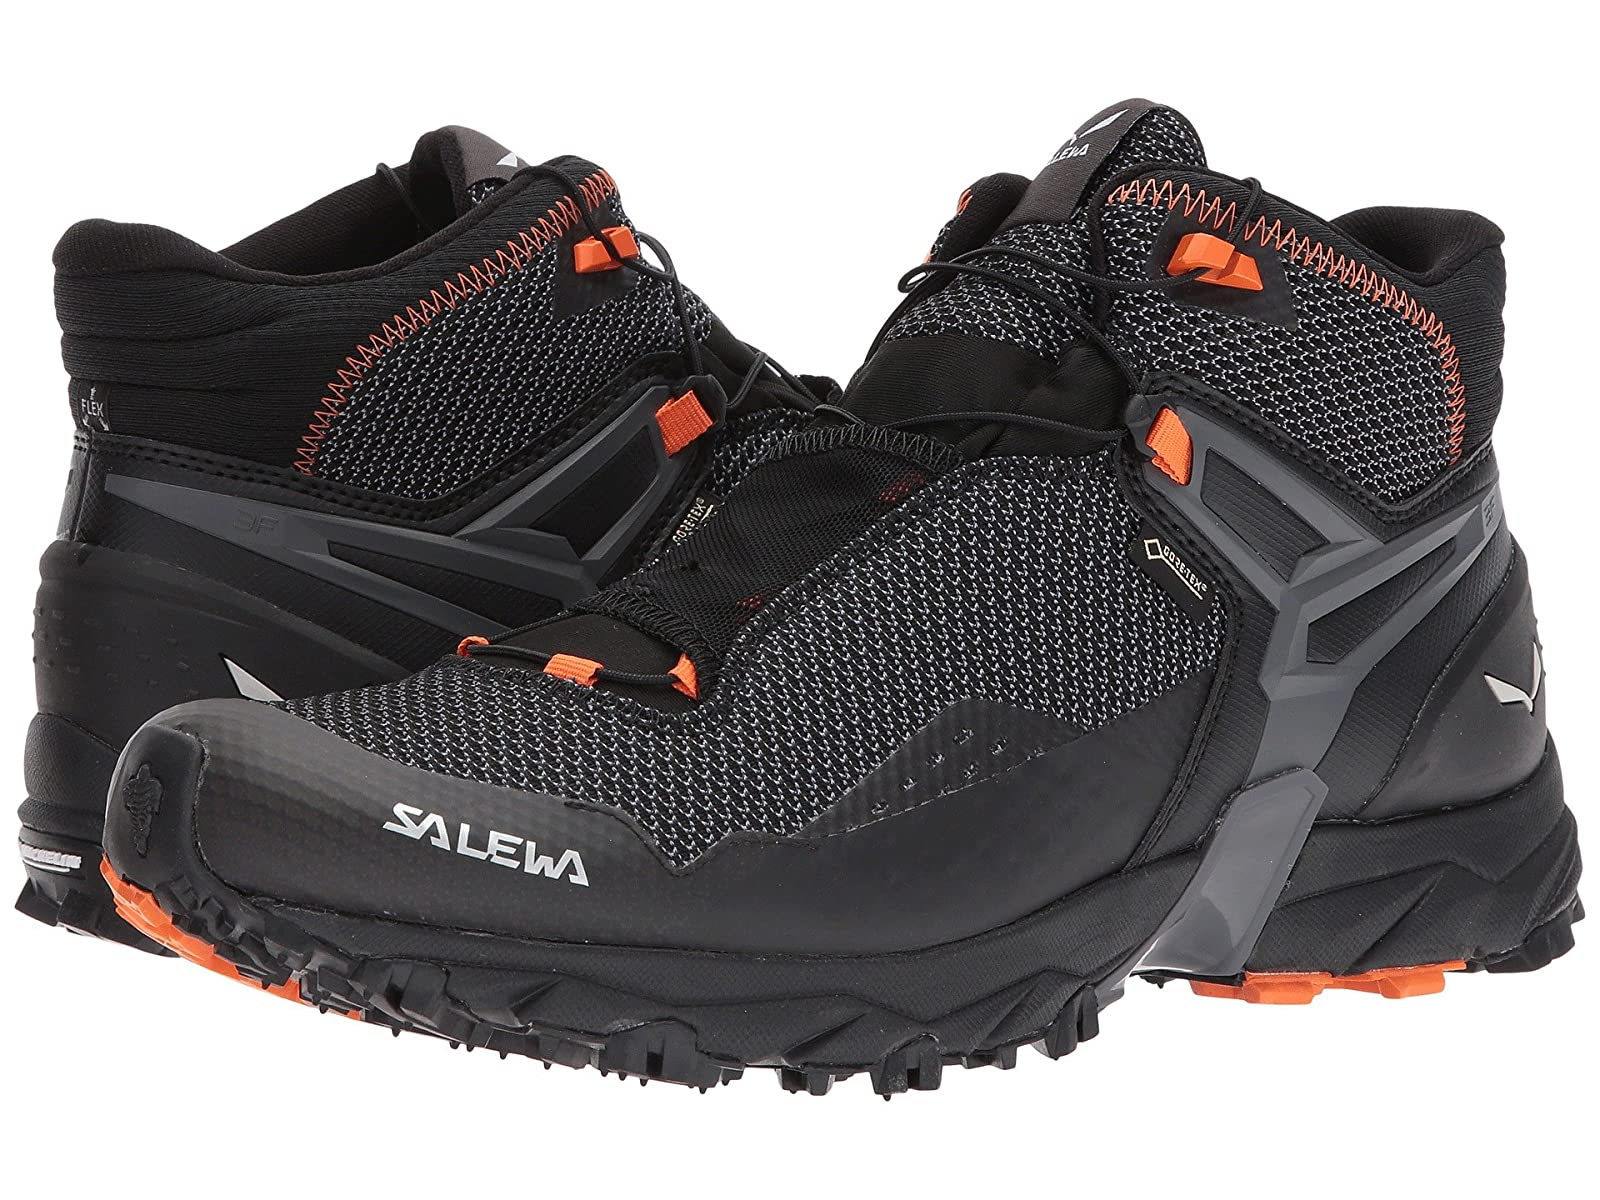 SALEWA Ultra Flex Mid GTXEconomical and quality shoes